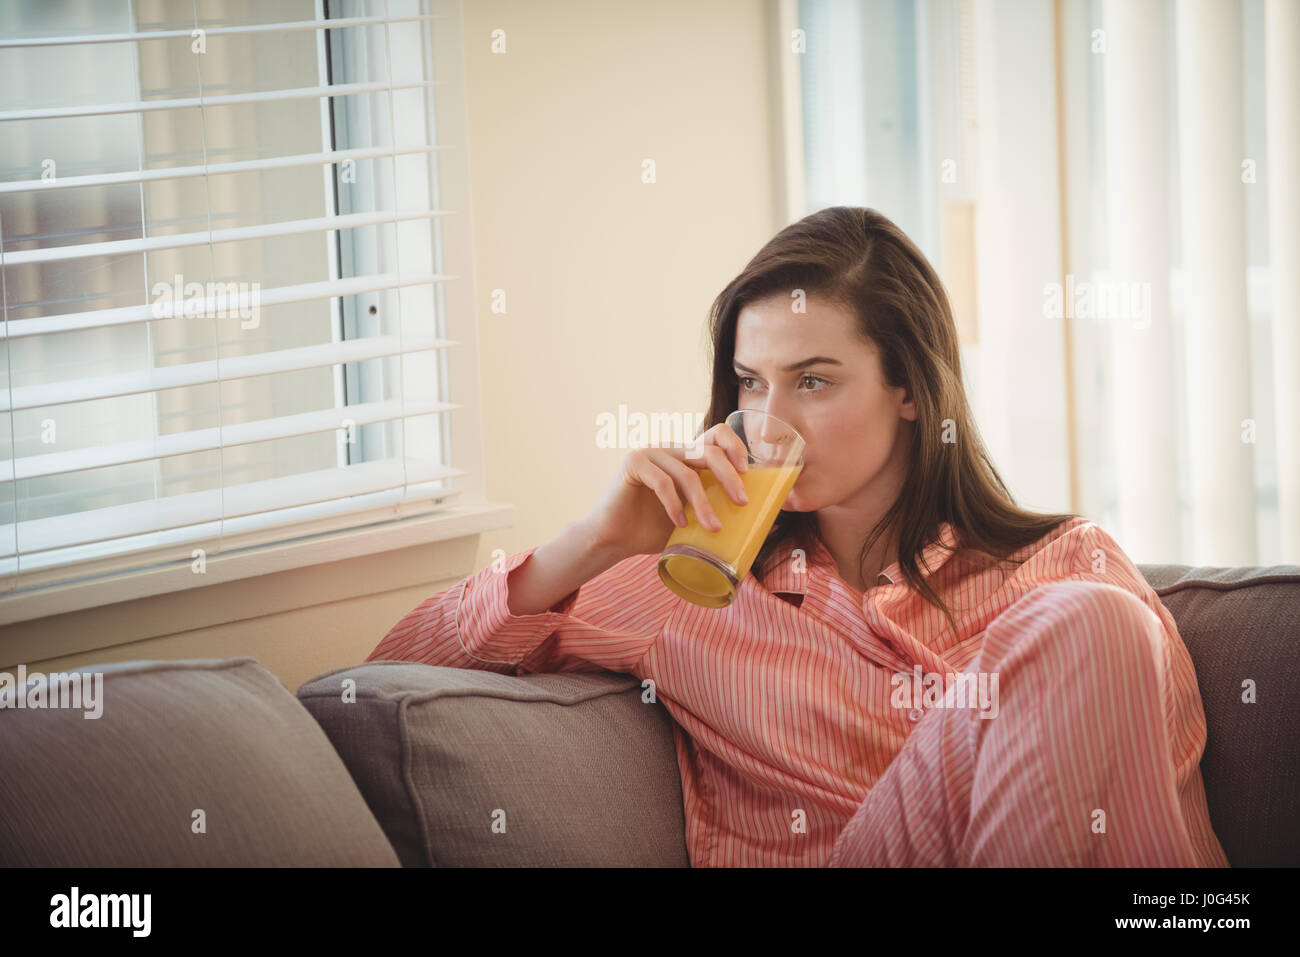 Woman drinking juice while looking through window at home - Stock Image